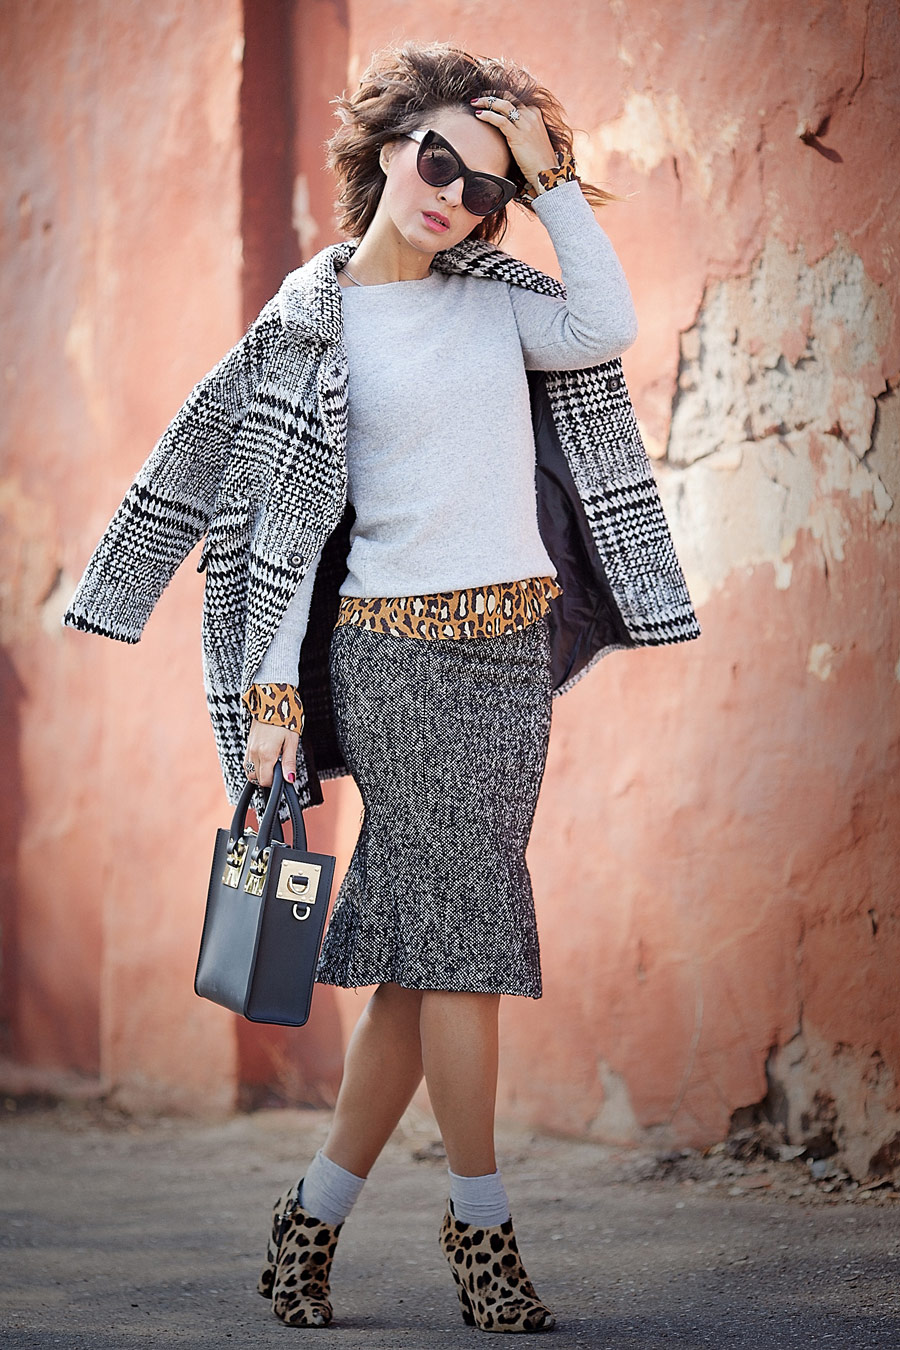 lady like outfit, mixing prints, street style fall outfits, tweed pencil skirt, leopard print outfit, sophie hulme bag,